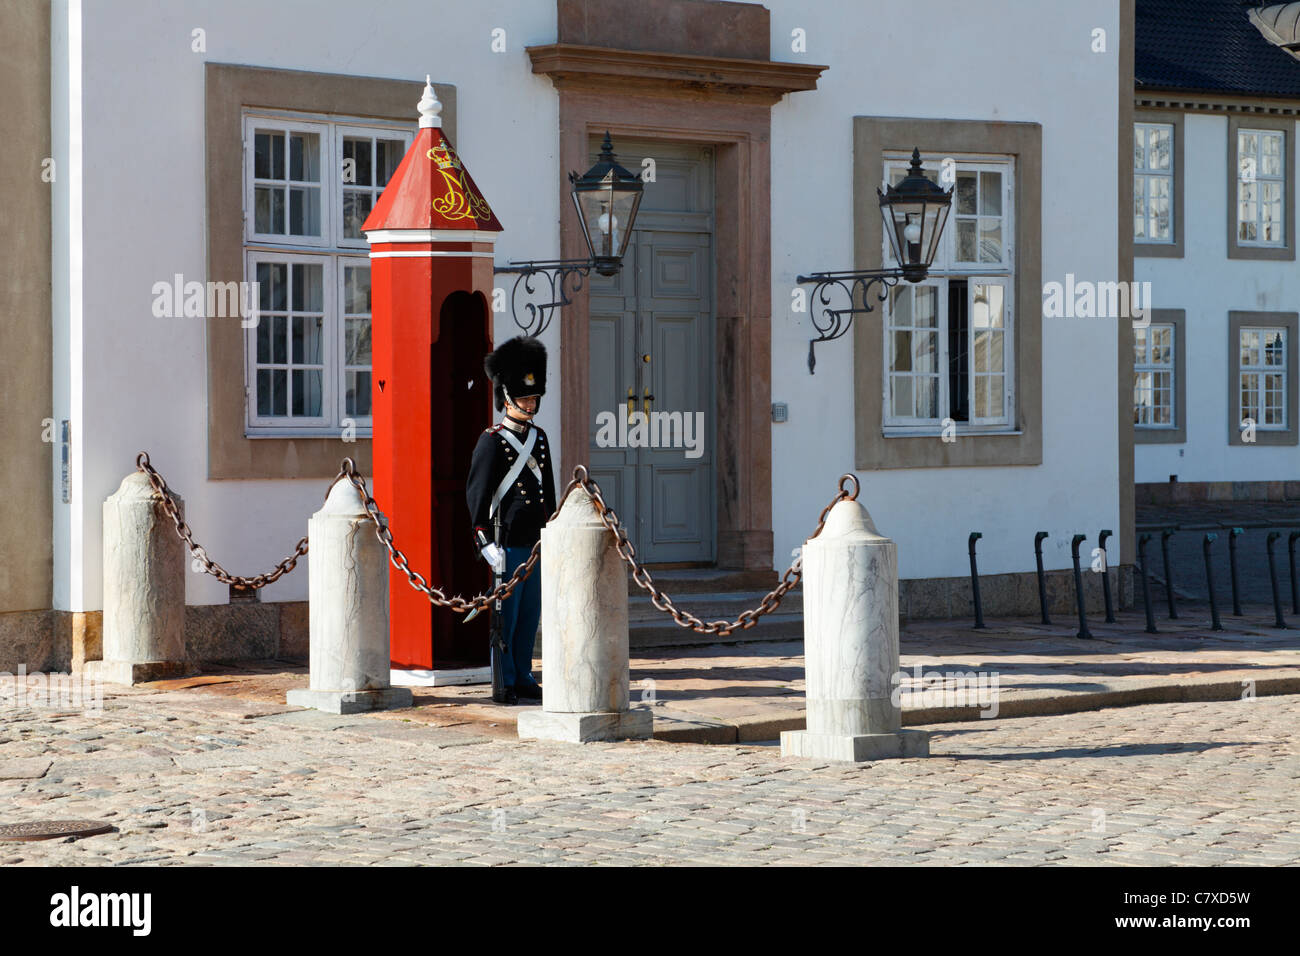 Bearskin sentry from the Royal Life Guards outside his sentry box at the Fredensborg Palace near Copenhagen, Denmark - Stock Image